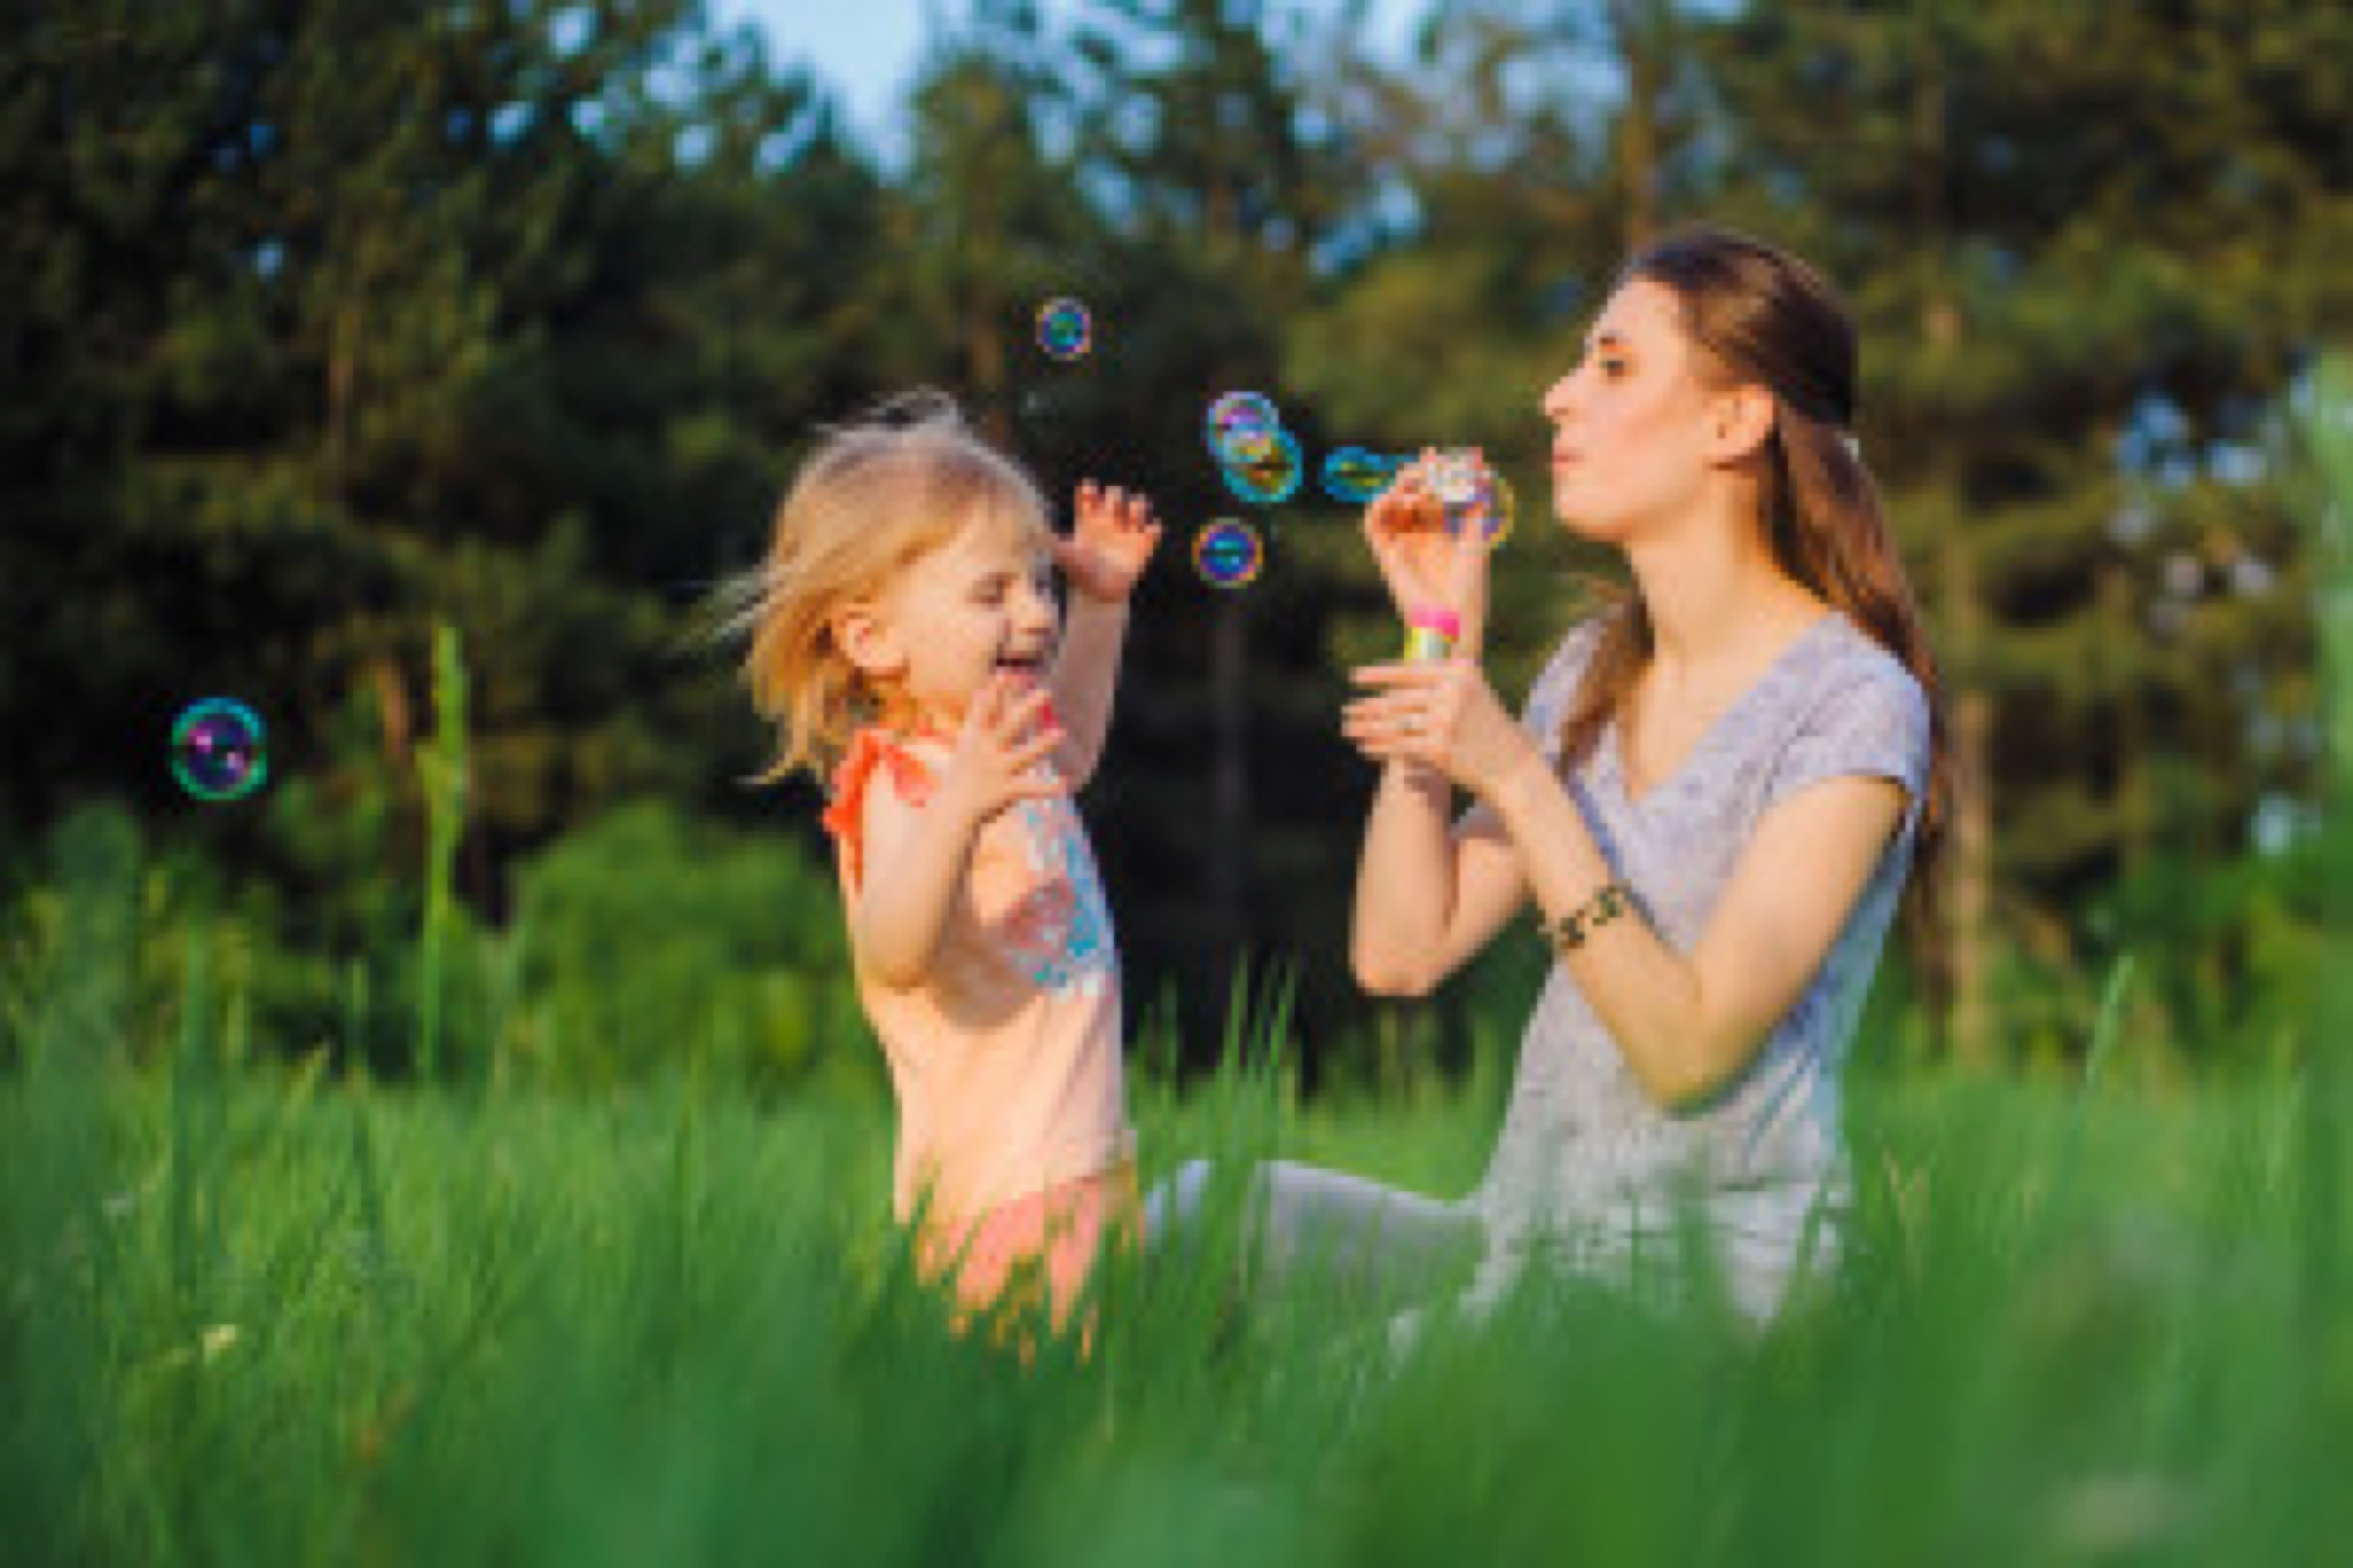 Mom and daughter blow bubbles